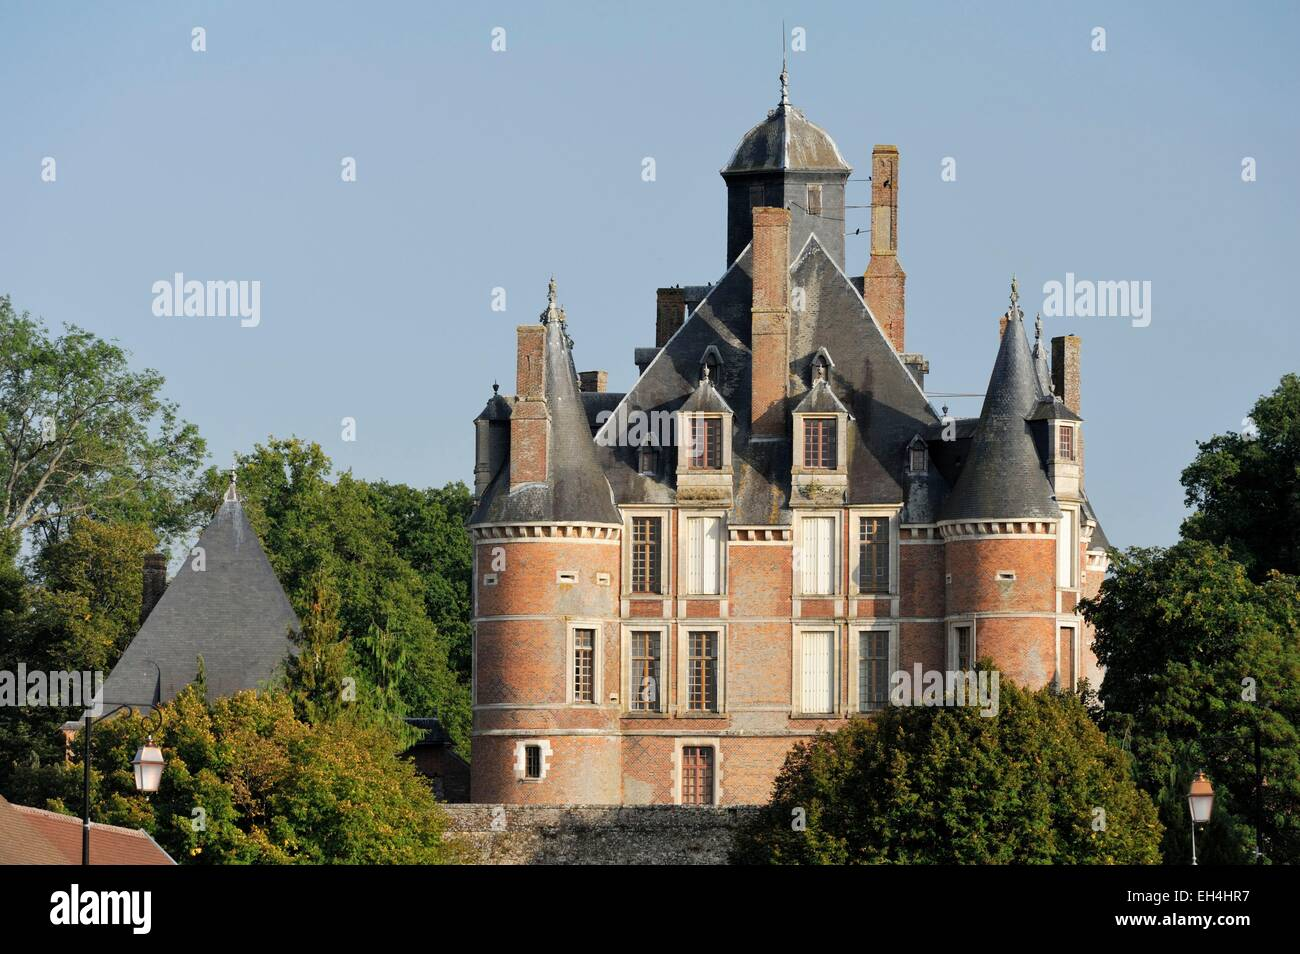 France, Marne, Montmort Lucy, castle behind the wall - Stock Image